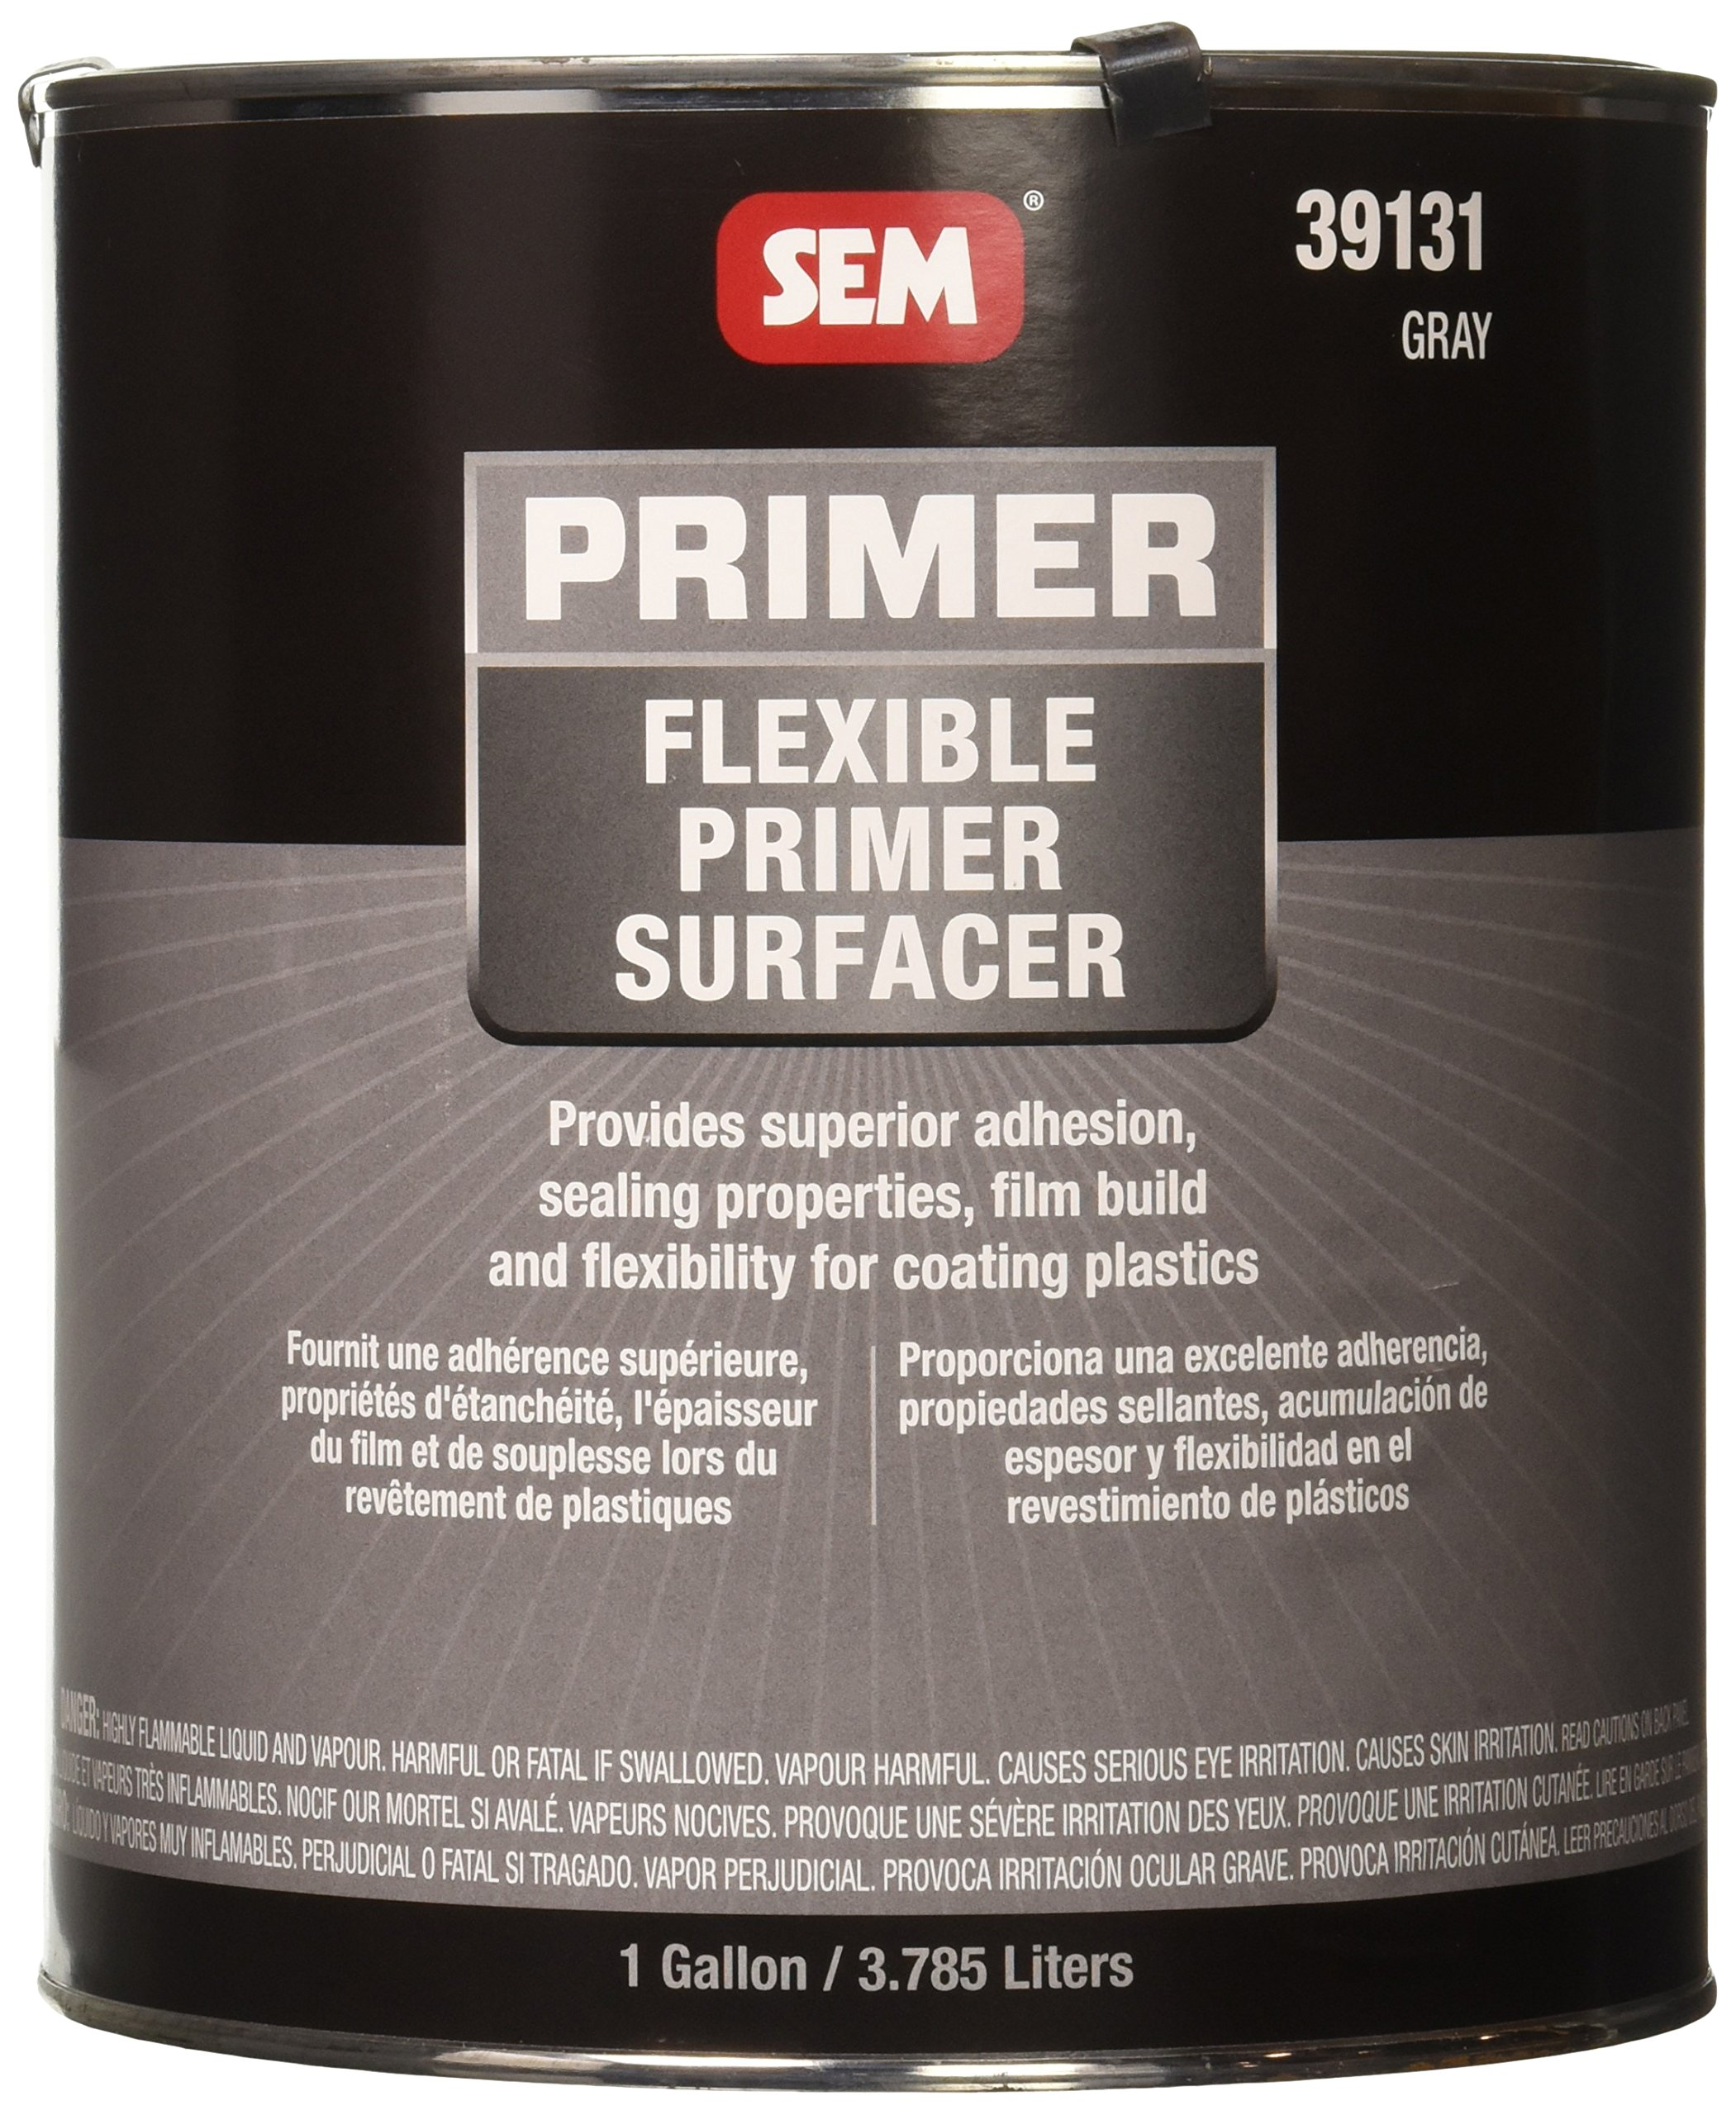 SEM 39131 Flexible Primer Surfacer - 1 Gallon